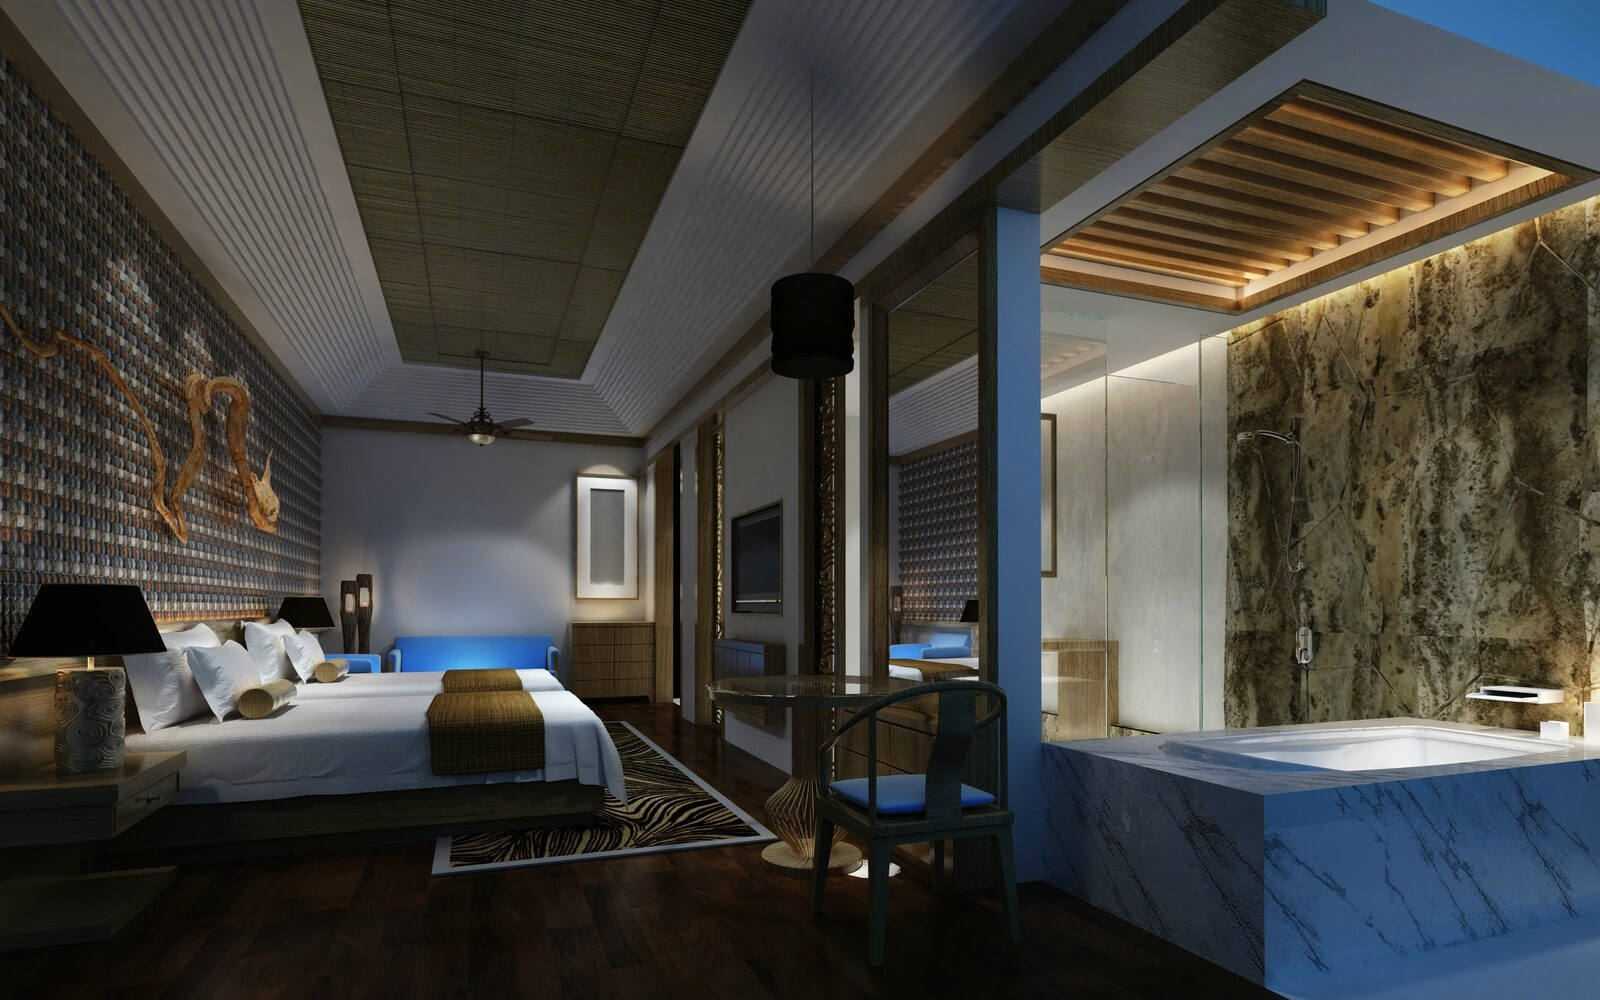 a luxury hotel room in barcelona with jacuzzi